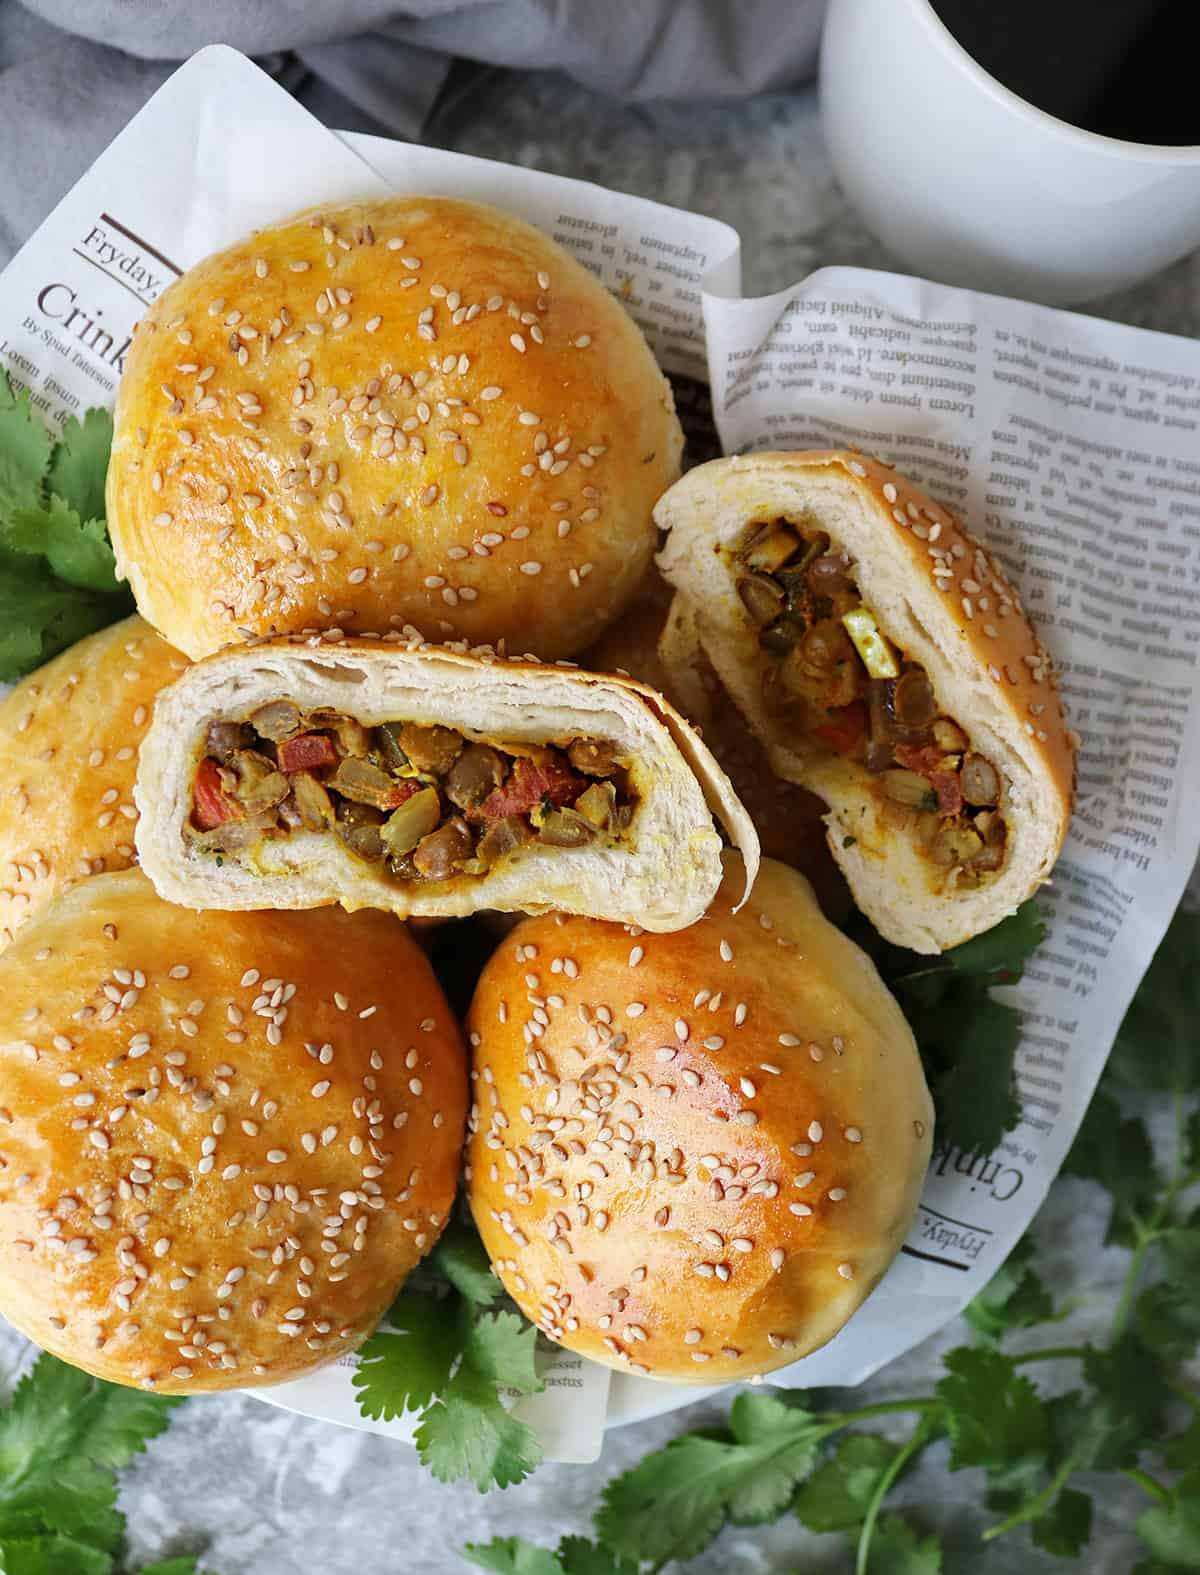 plate of stuffed buns with Ginger, garlic, onions, coriander, smoked paprika, turmeric, canned lentils, and canned tomatoes.